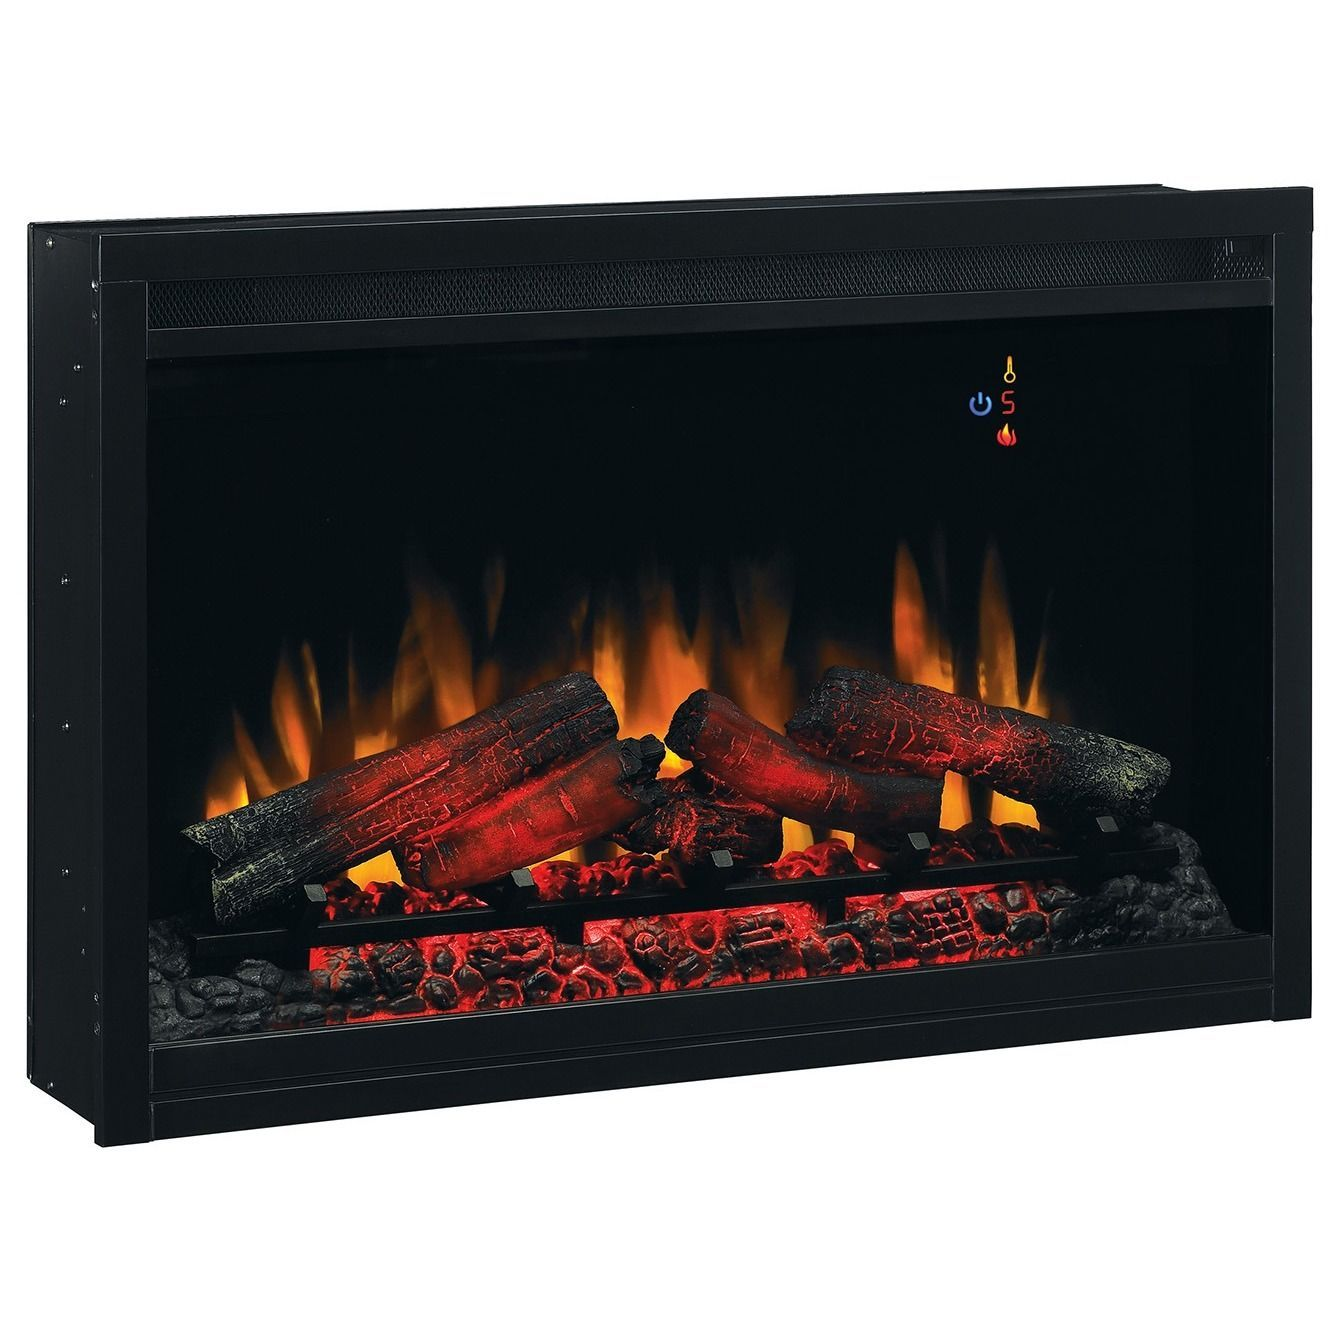 Classicflame 36eb110 Grt 36 Inch Traditional Built In 120 Volt